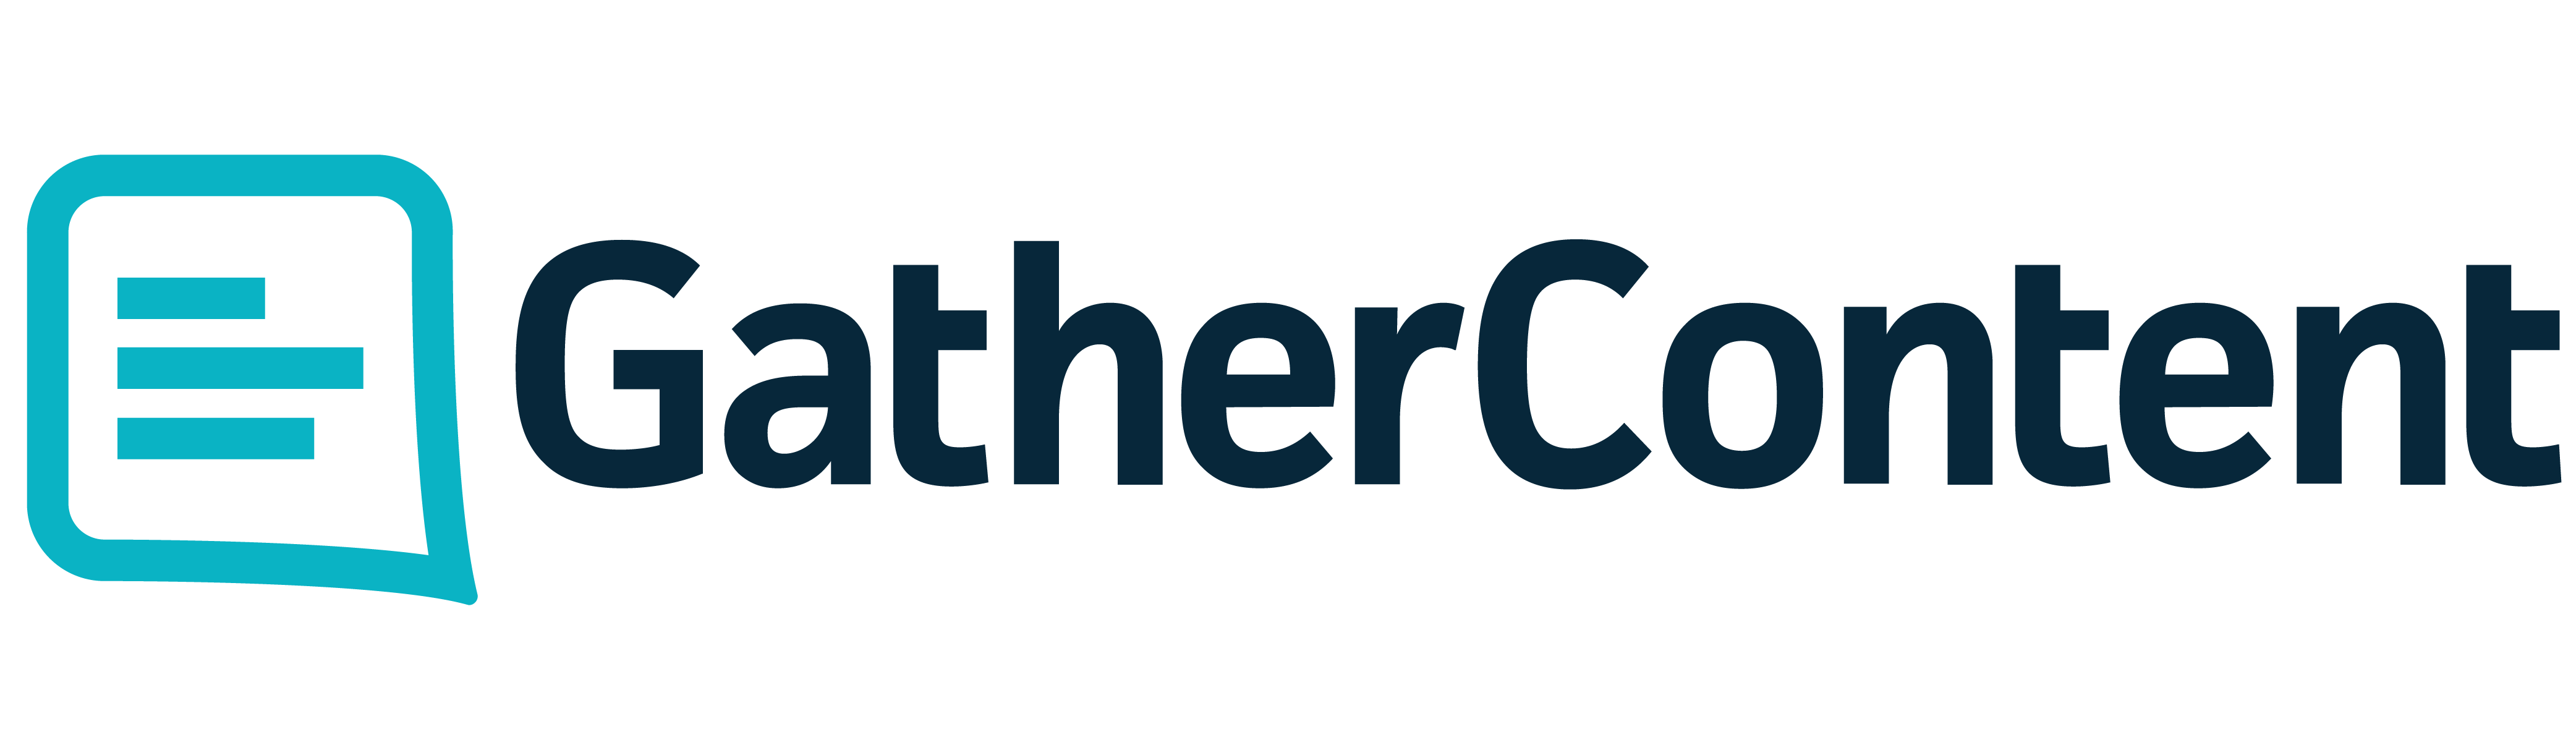 gather-content-logo-01.png